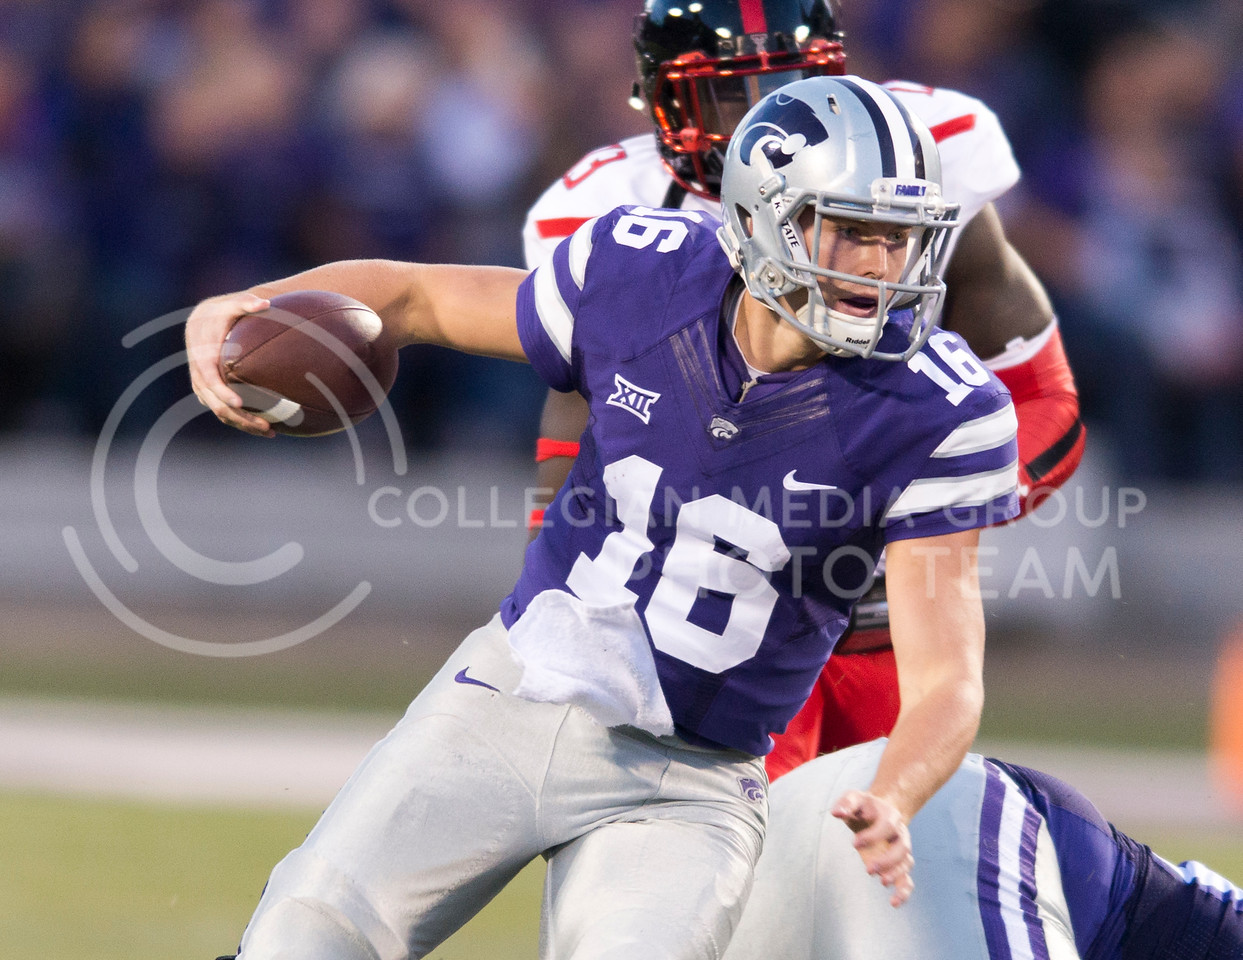 Junior quarterback Jesse Ertz takes the ball downfield during the game between K-State and Texas Tech on Oct. 8, 2016, in Bill Snyder Family Stadium. (George Walker | The Collegian)